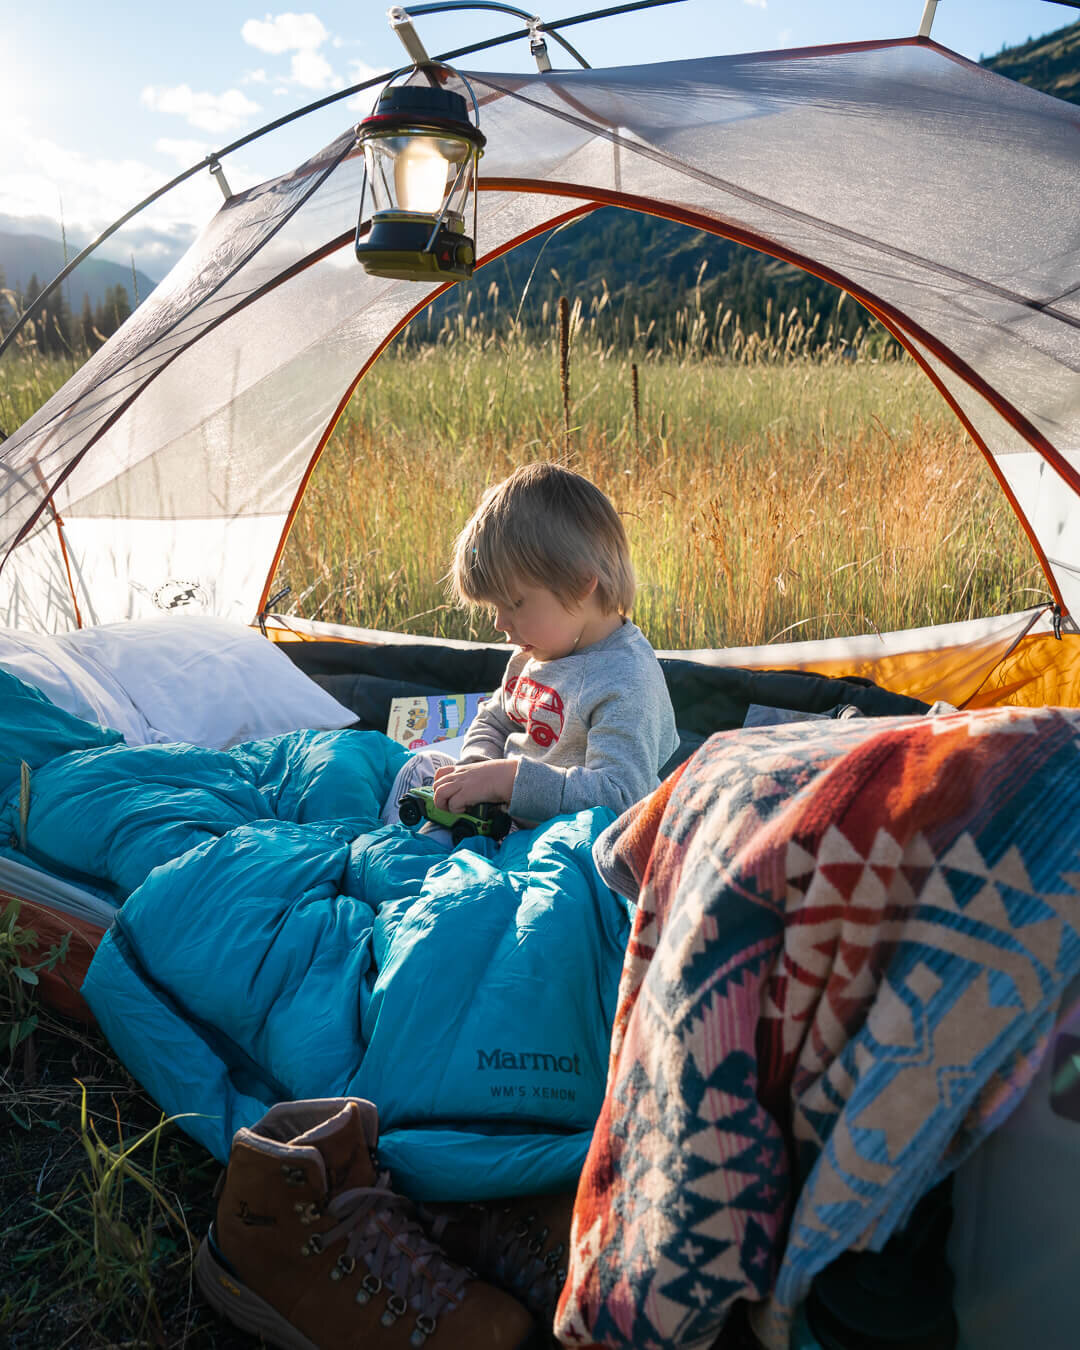 Camping in the yard for the first time! Shown in photo: Danner  Hiking Boots , Pendleton  Towel , Goal Zero  Lantern , Big Agnes Copper Spur  Tent .